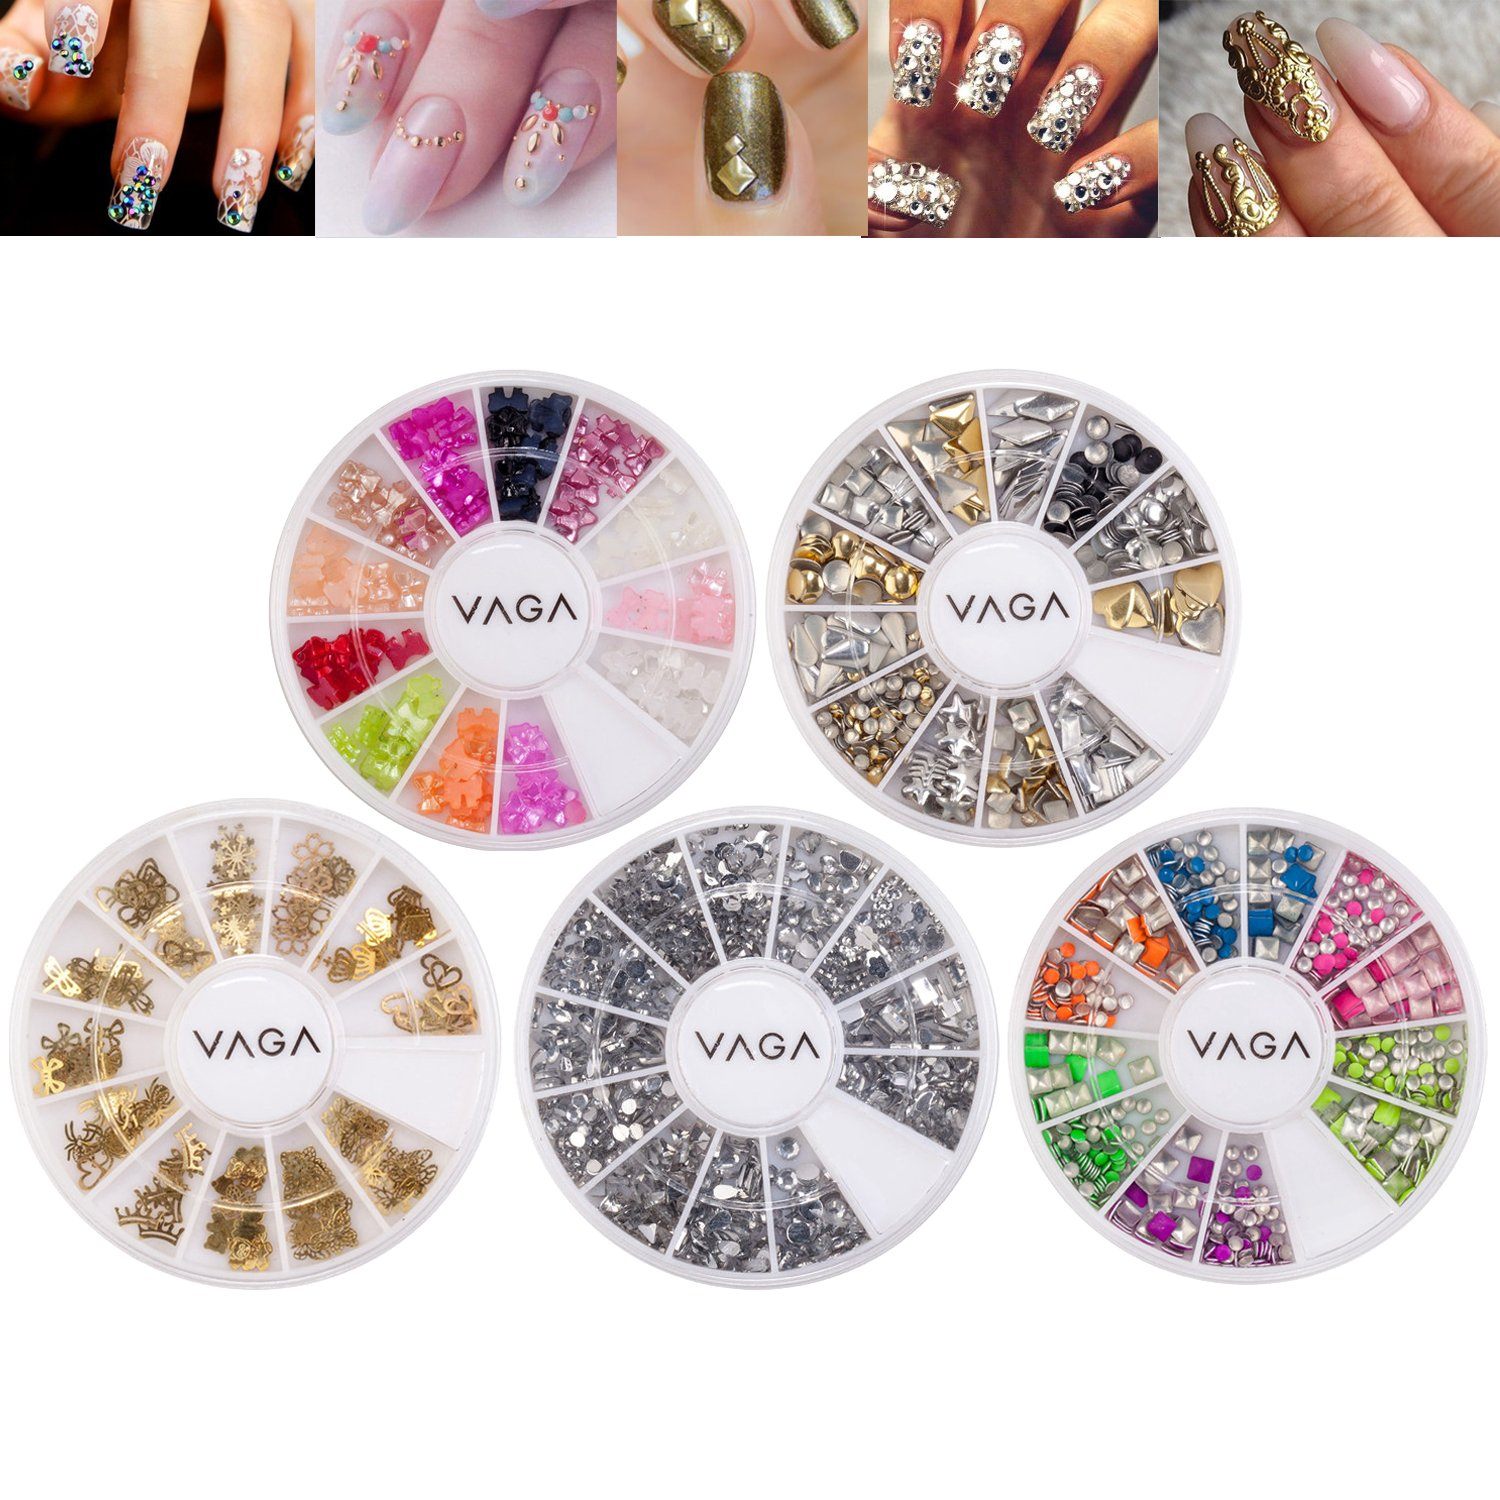 Nails Art & Tools Lovely Nail Art Kit 15pcs Wooden Nail Art Brush 12 Colors Nail Rhinestones 5pcs Pink Dotting Pens 12 Nail Art Rhinestones Gold Studs Numerous In Variety